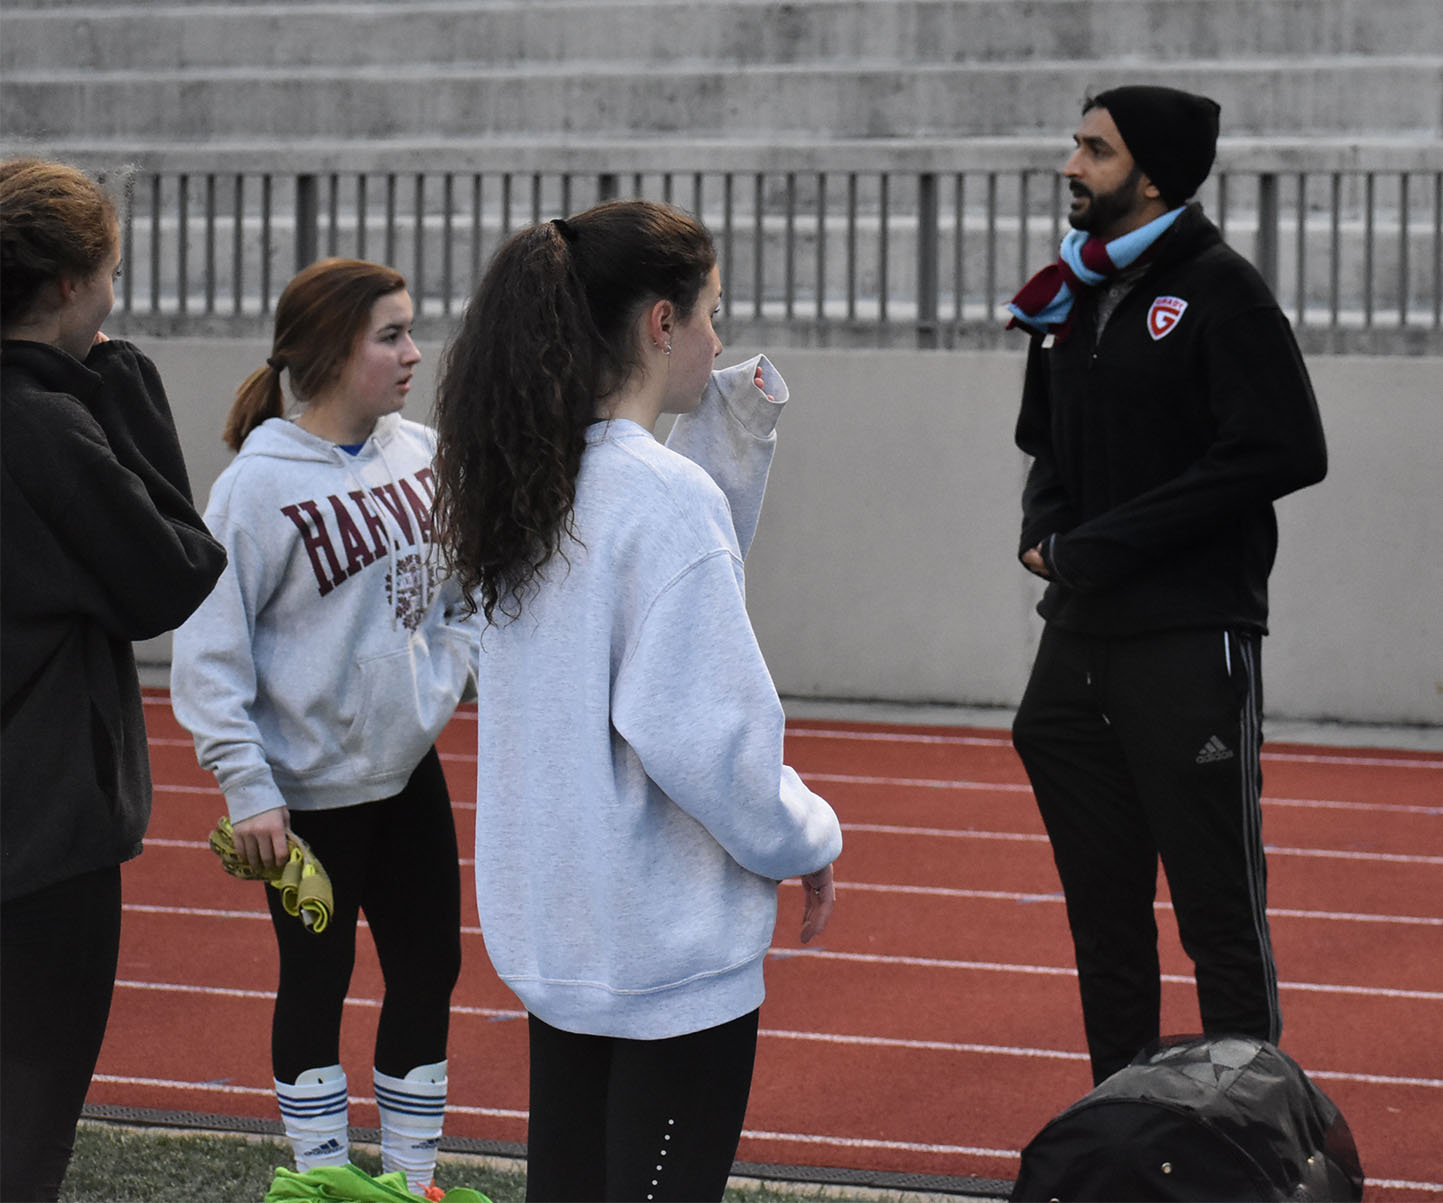 SOCCER SEASON: Member of the Junior Varsity Girls soccer team prepares for the upcoming season by talking to coach Hamel Patel. This new JV team offers freshmen a place to hone their skills as they prepare to play varsity in their coming years.